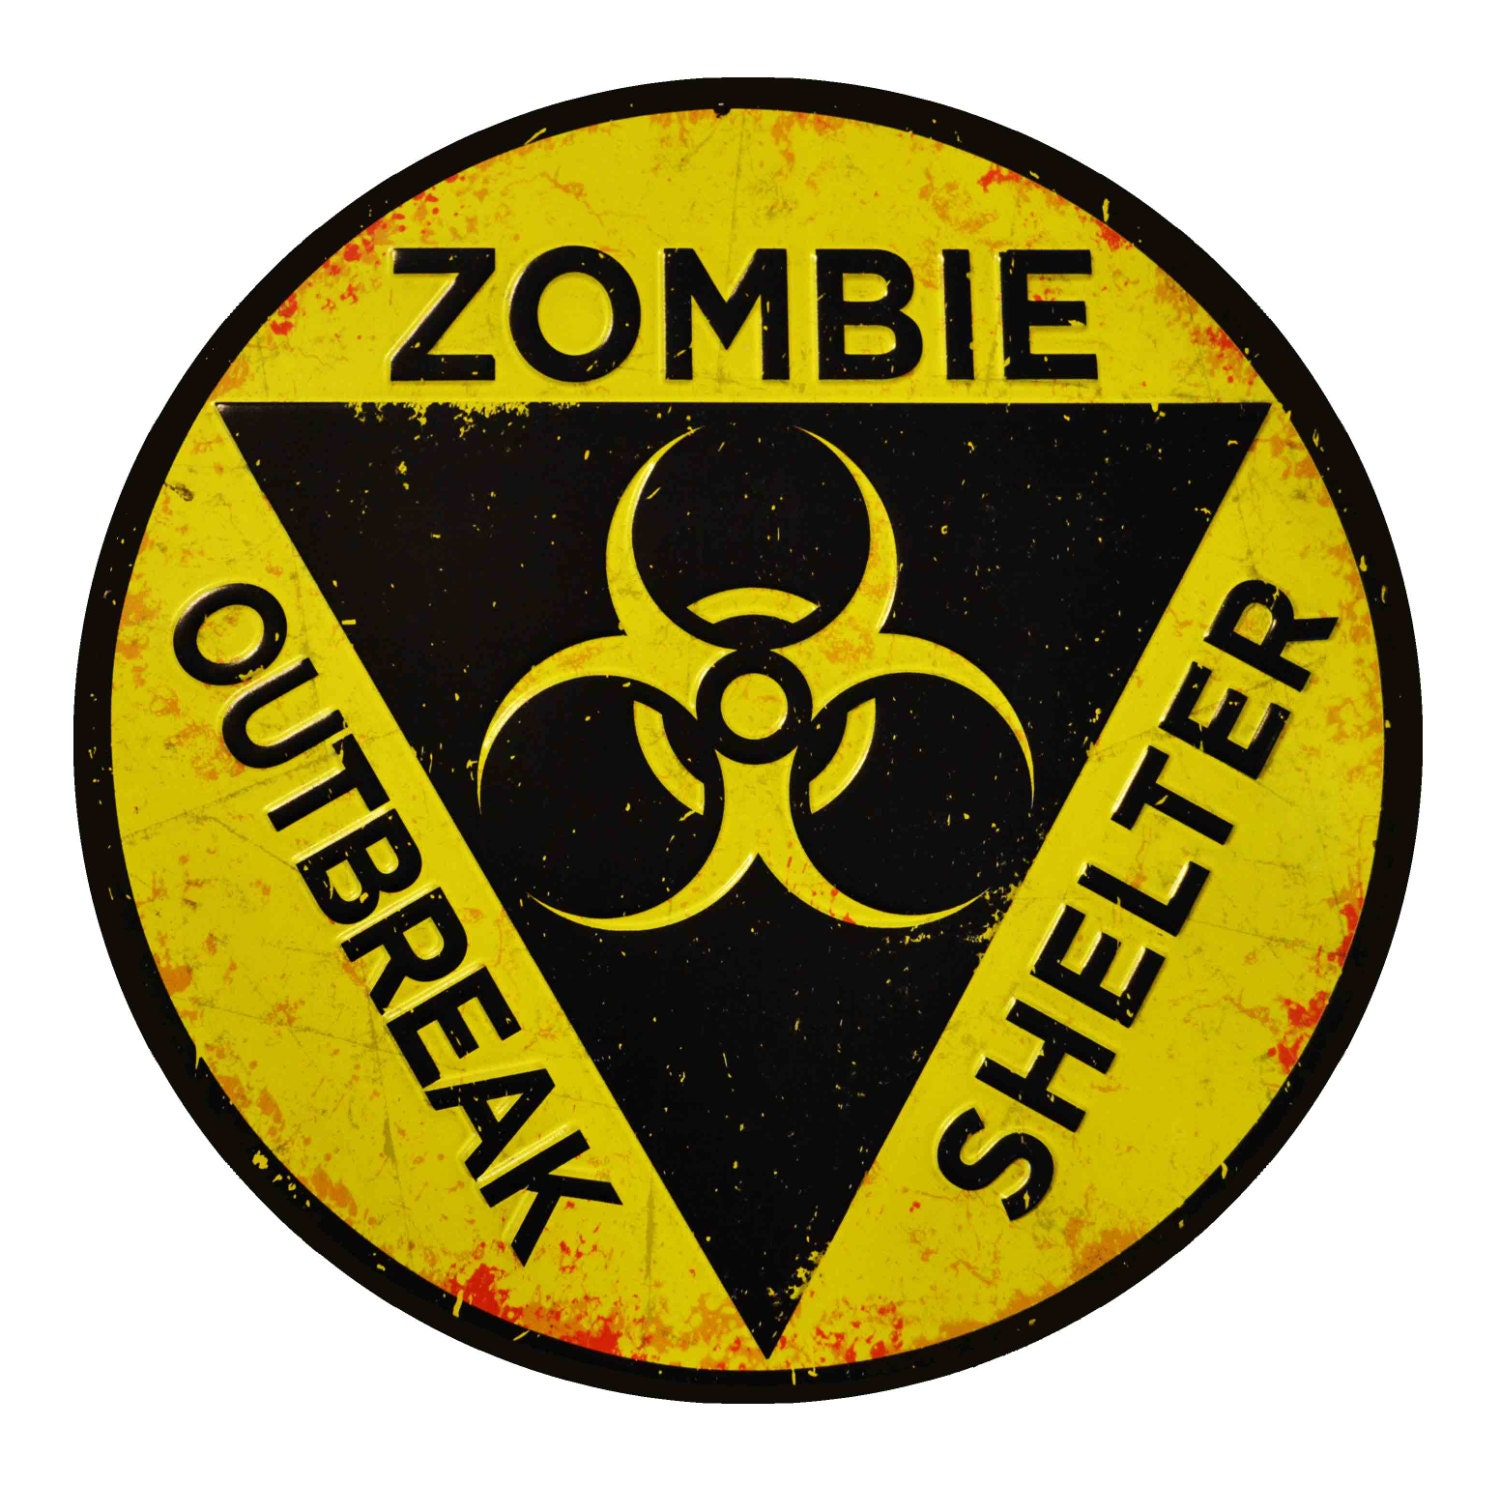 ZOMBIE DECAL 8 ZOMBIE Outbreak Shelter